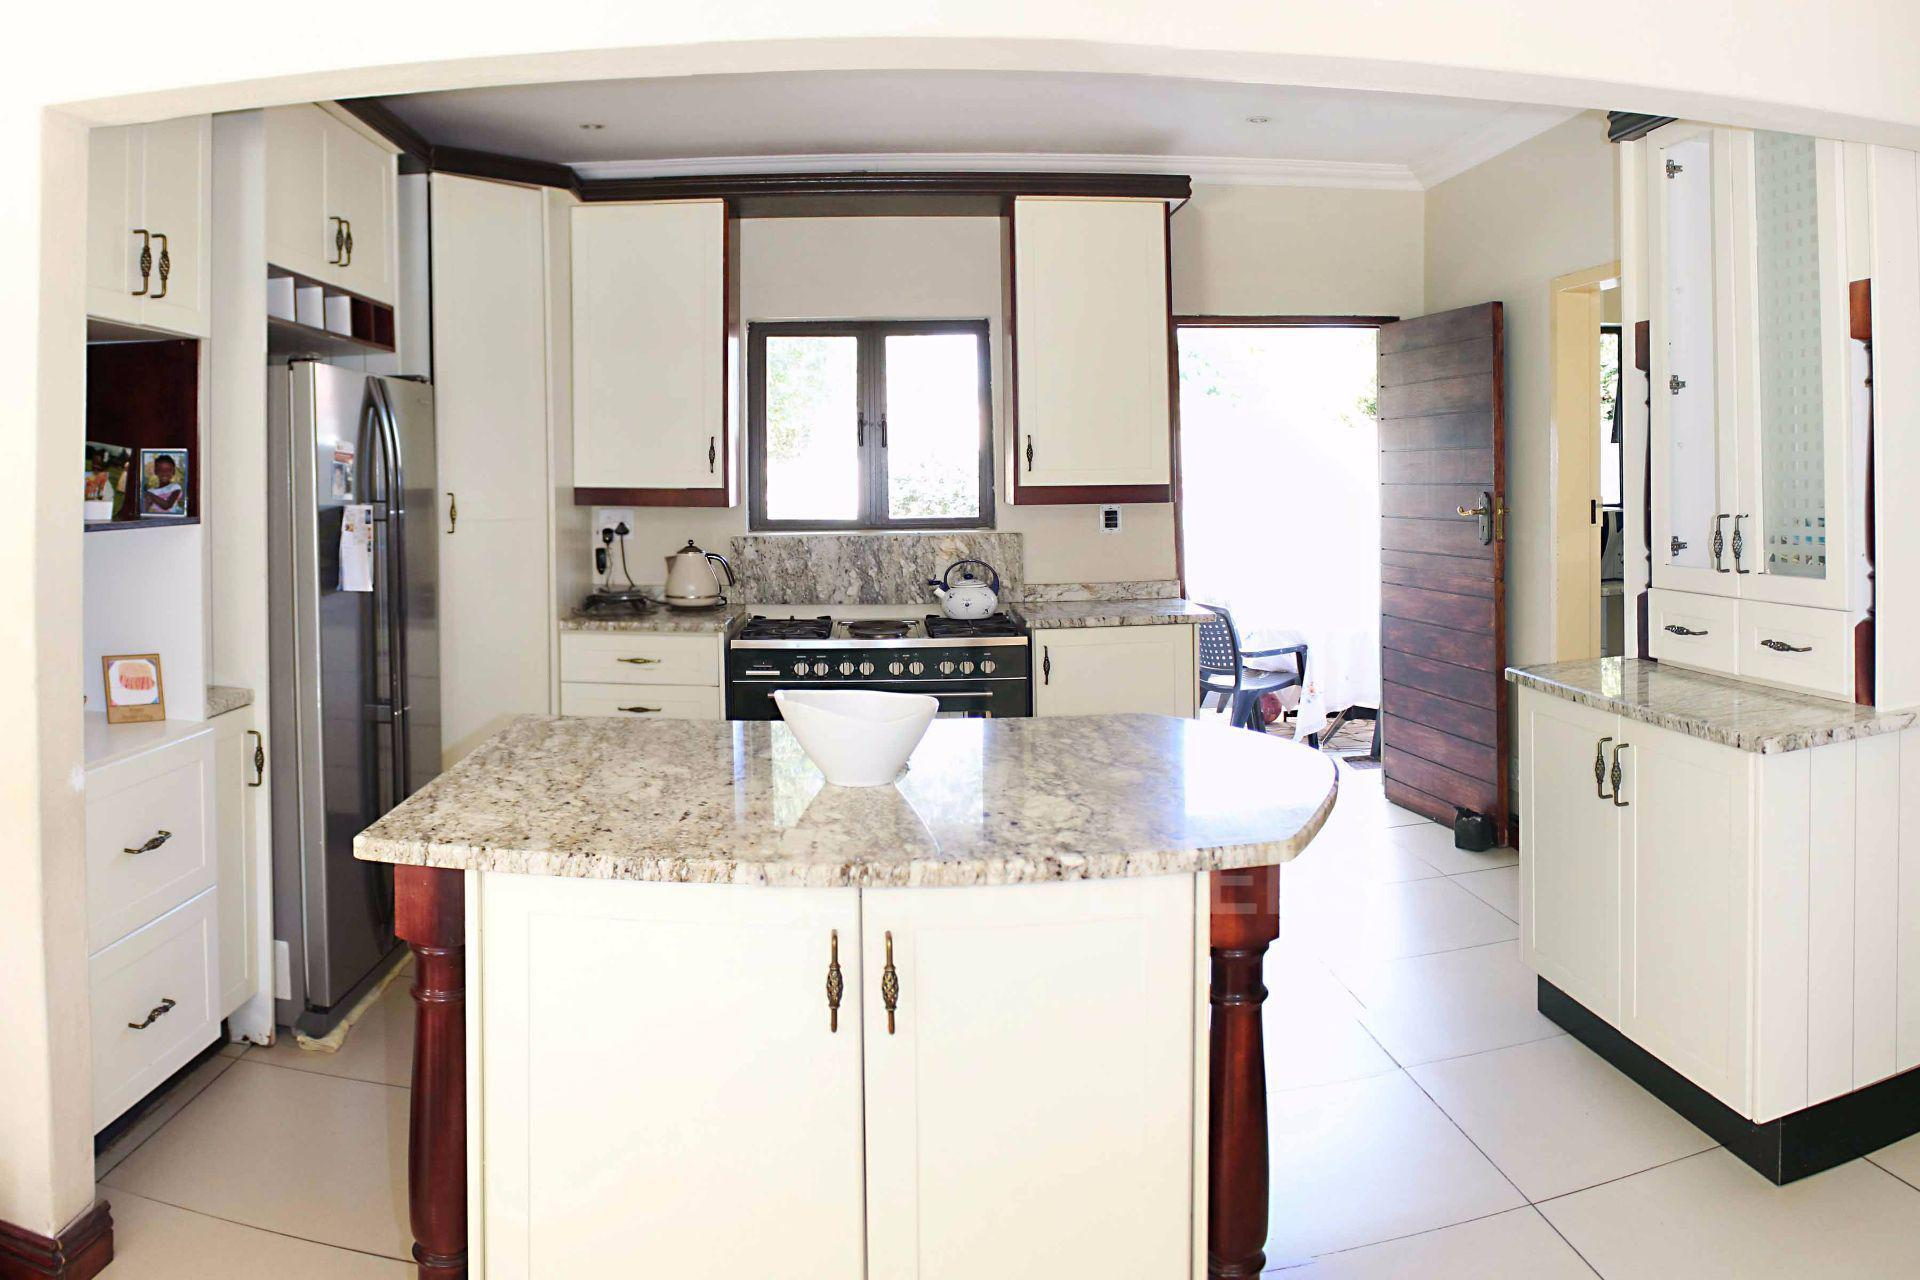 Waterkloof Ridge Ext 1 property for sale. Ref No: 13488804. Picture no 8